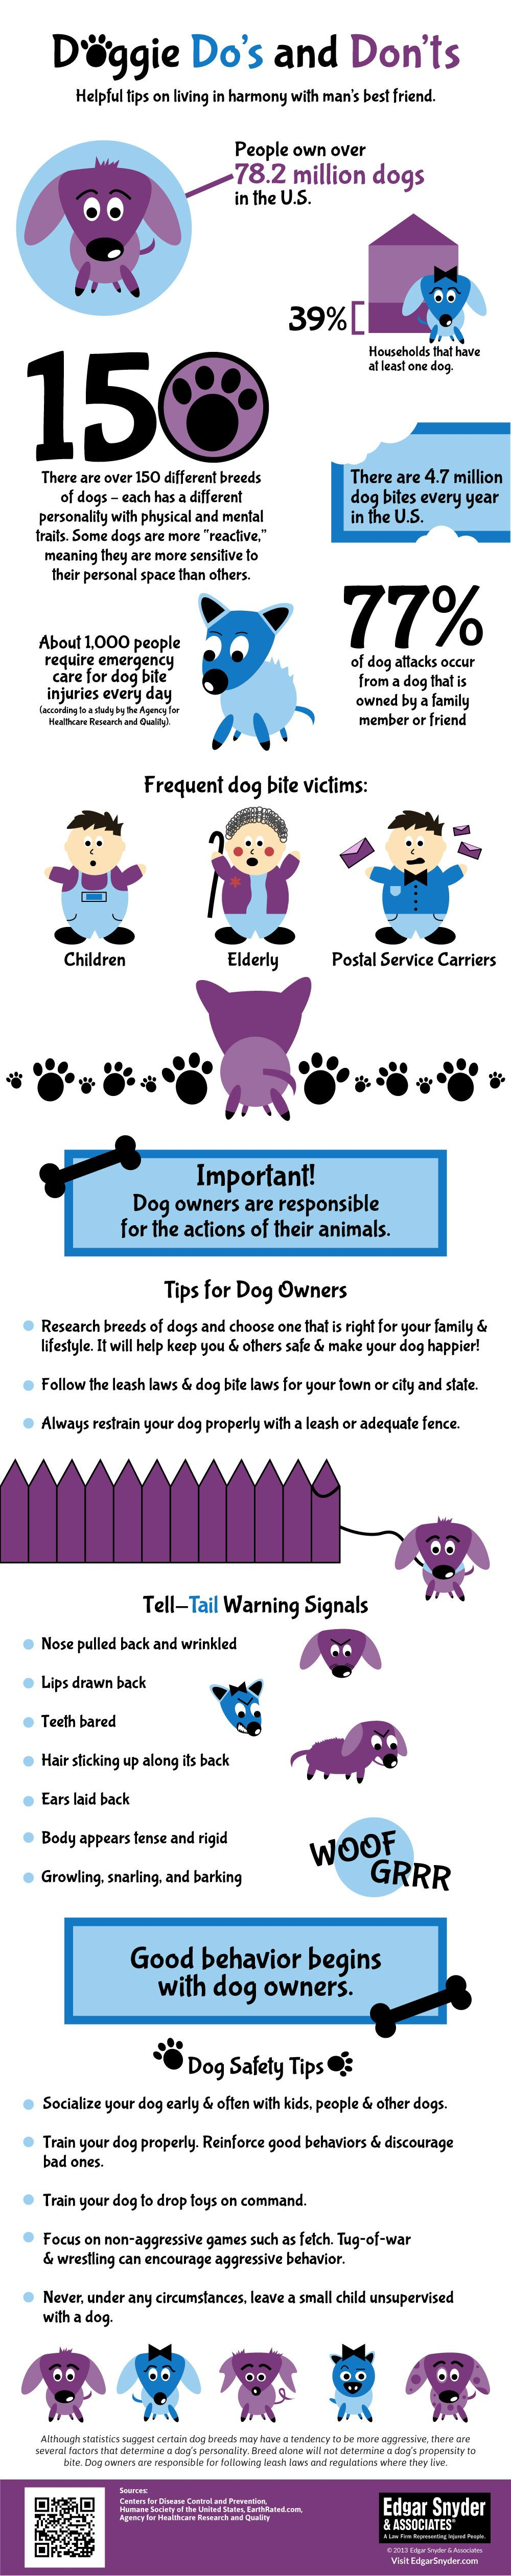 Safety around dogs. The more information you have, the safer you are around mans' best friend.